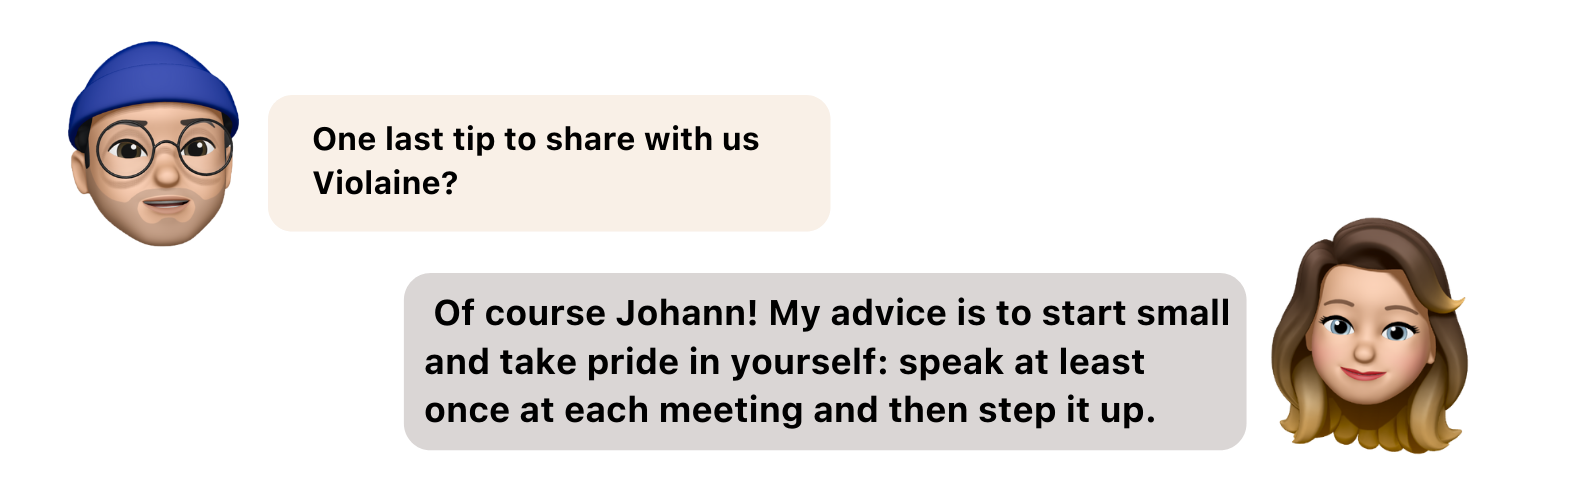 """Interview Popwork-Violaine-du-Boucher- Johann:""""One last tip to share with us Violaine?"""" , Violaine: """"Of course Johann! My advice is to start small and take pride in yourself: speak at least once at each meeting and then step it up."""""""